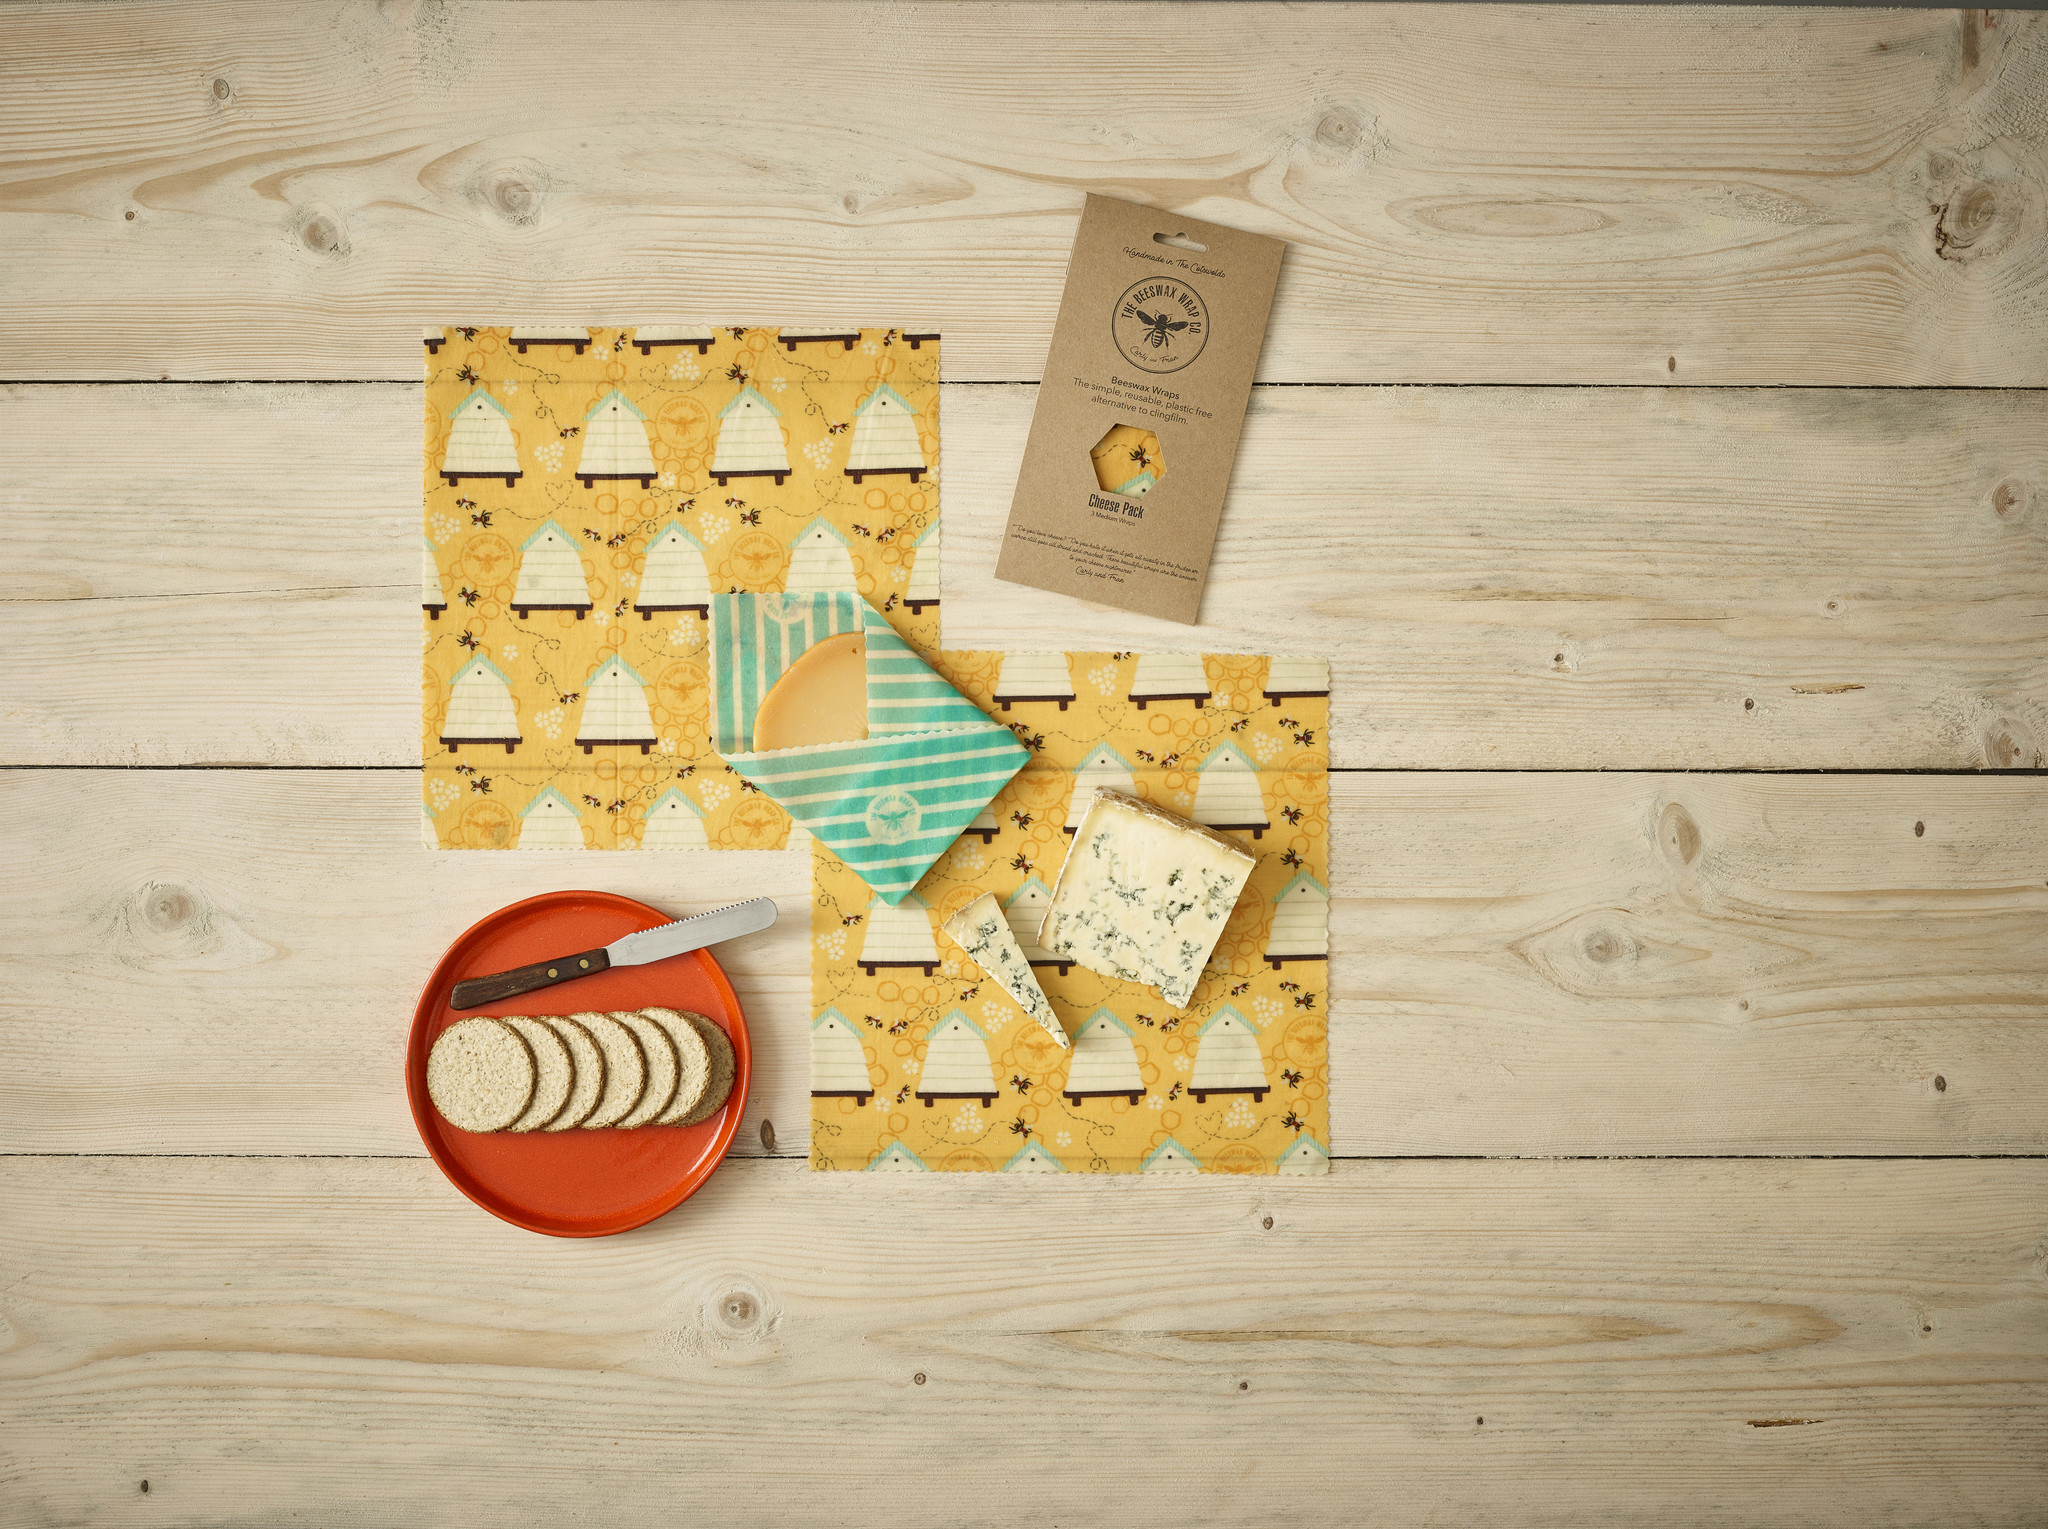 Beeswax Beeswax Food wraps medium package - 3 pieces S - M - L - medium package - reusable and durable - Copy